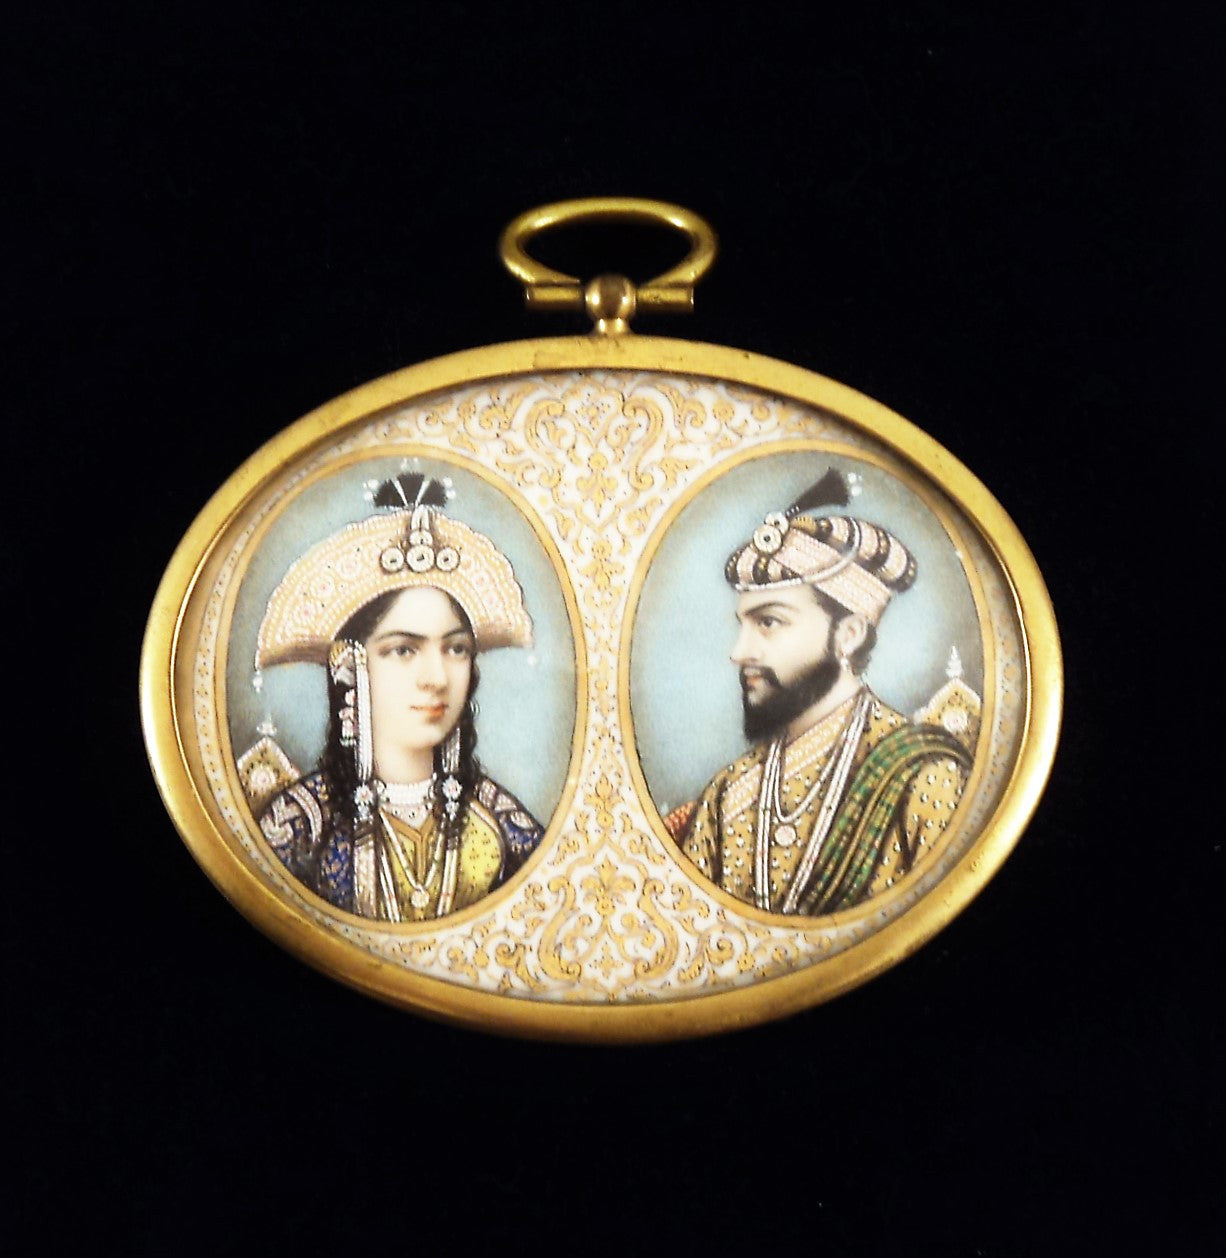 19th C. Shah Jahan and Mumtaz Mahal Miniature Portrait on Ivory